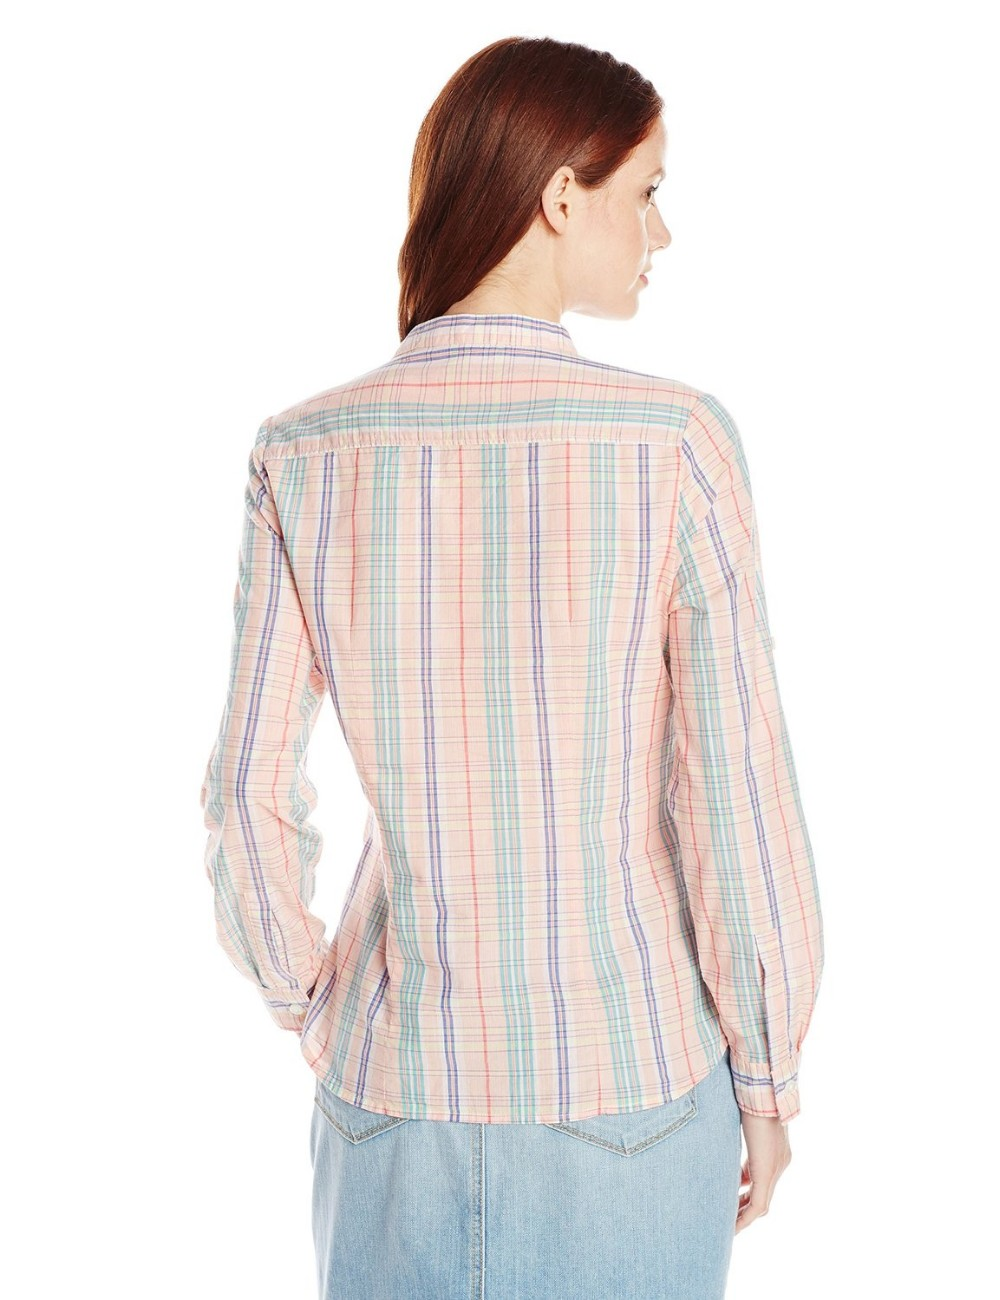 Chest pockets checked Slightly fitted mini stand collar 100 cotton blouse/shirt